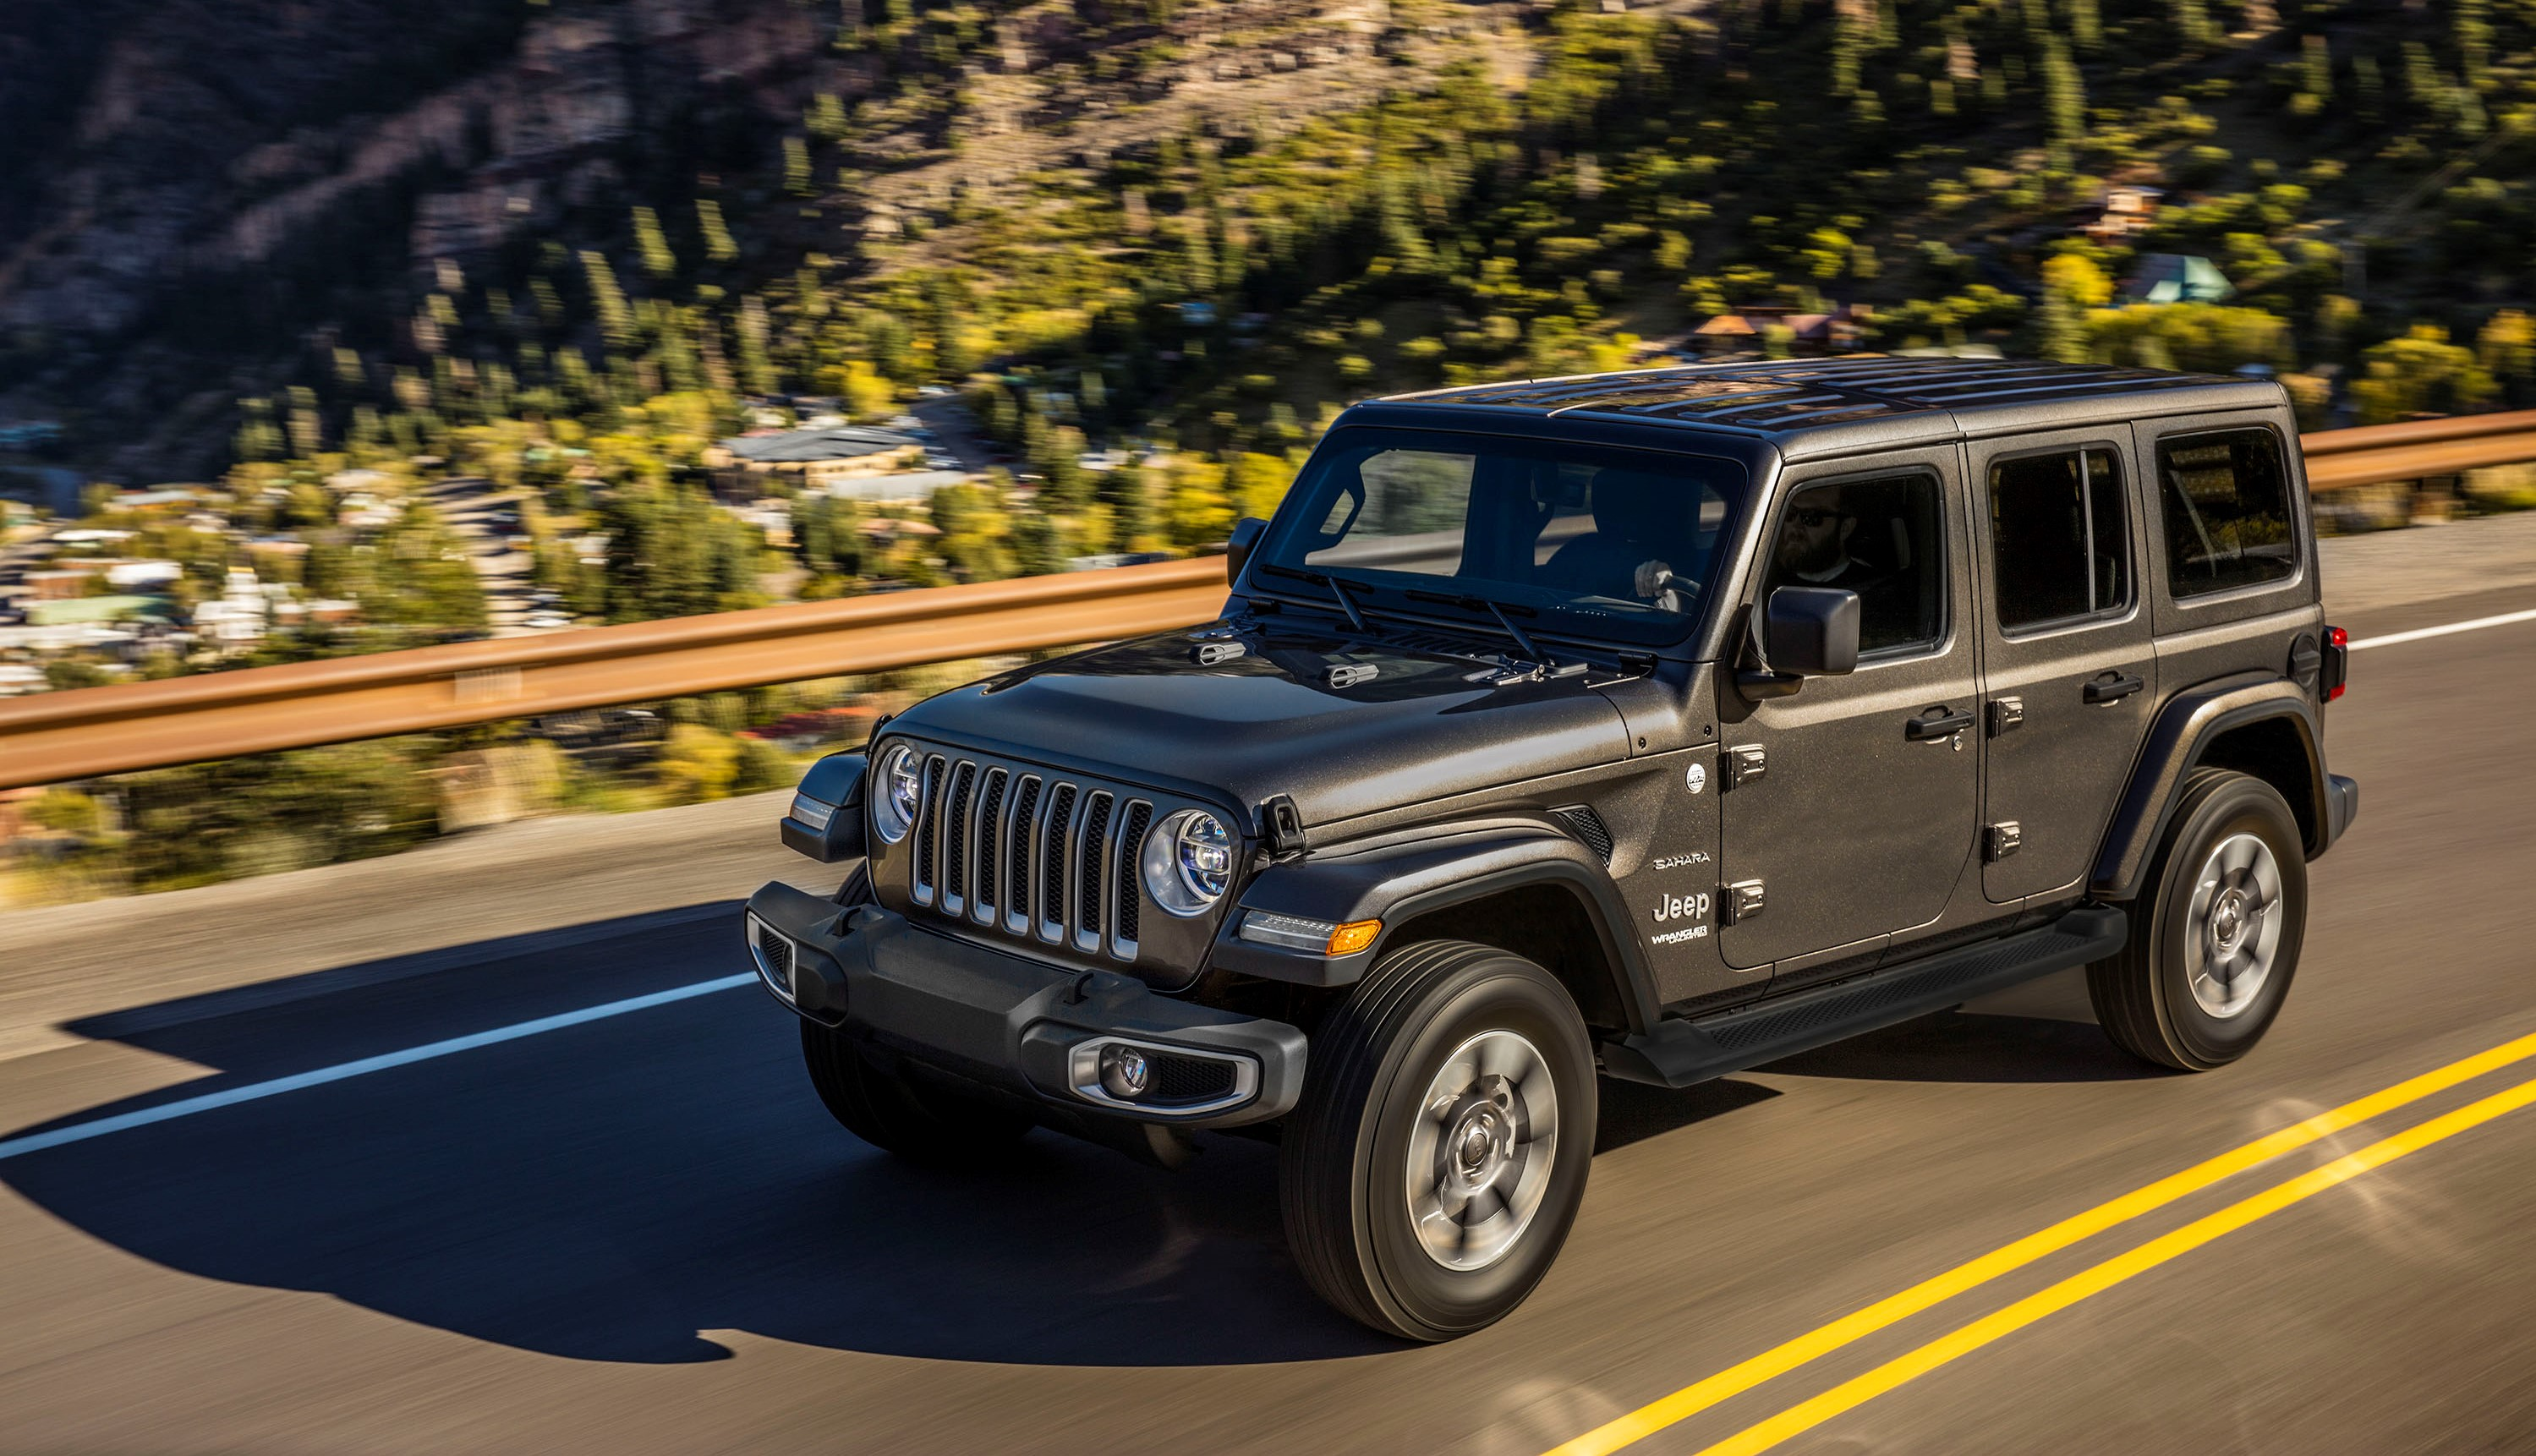 The 2018 Jeep Wrangler Unlimited Sahara Spied With $45,000 ...